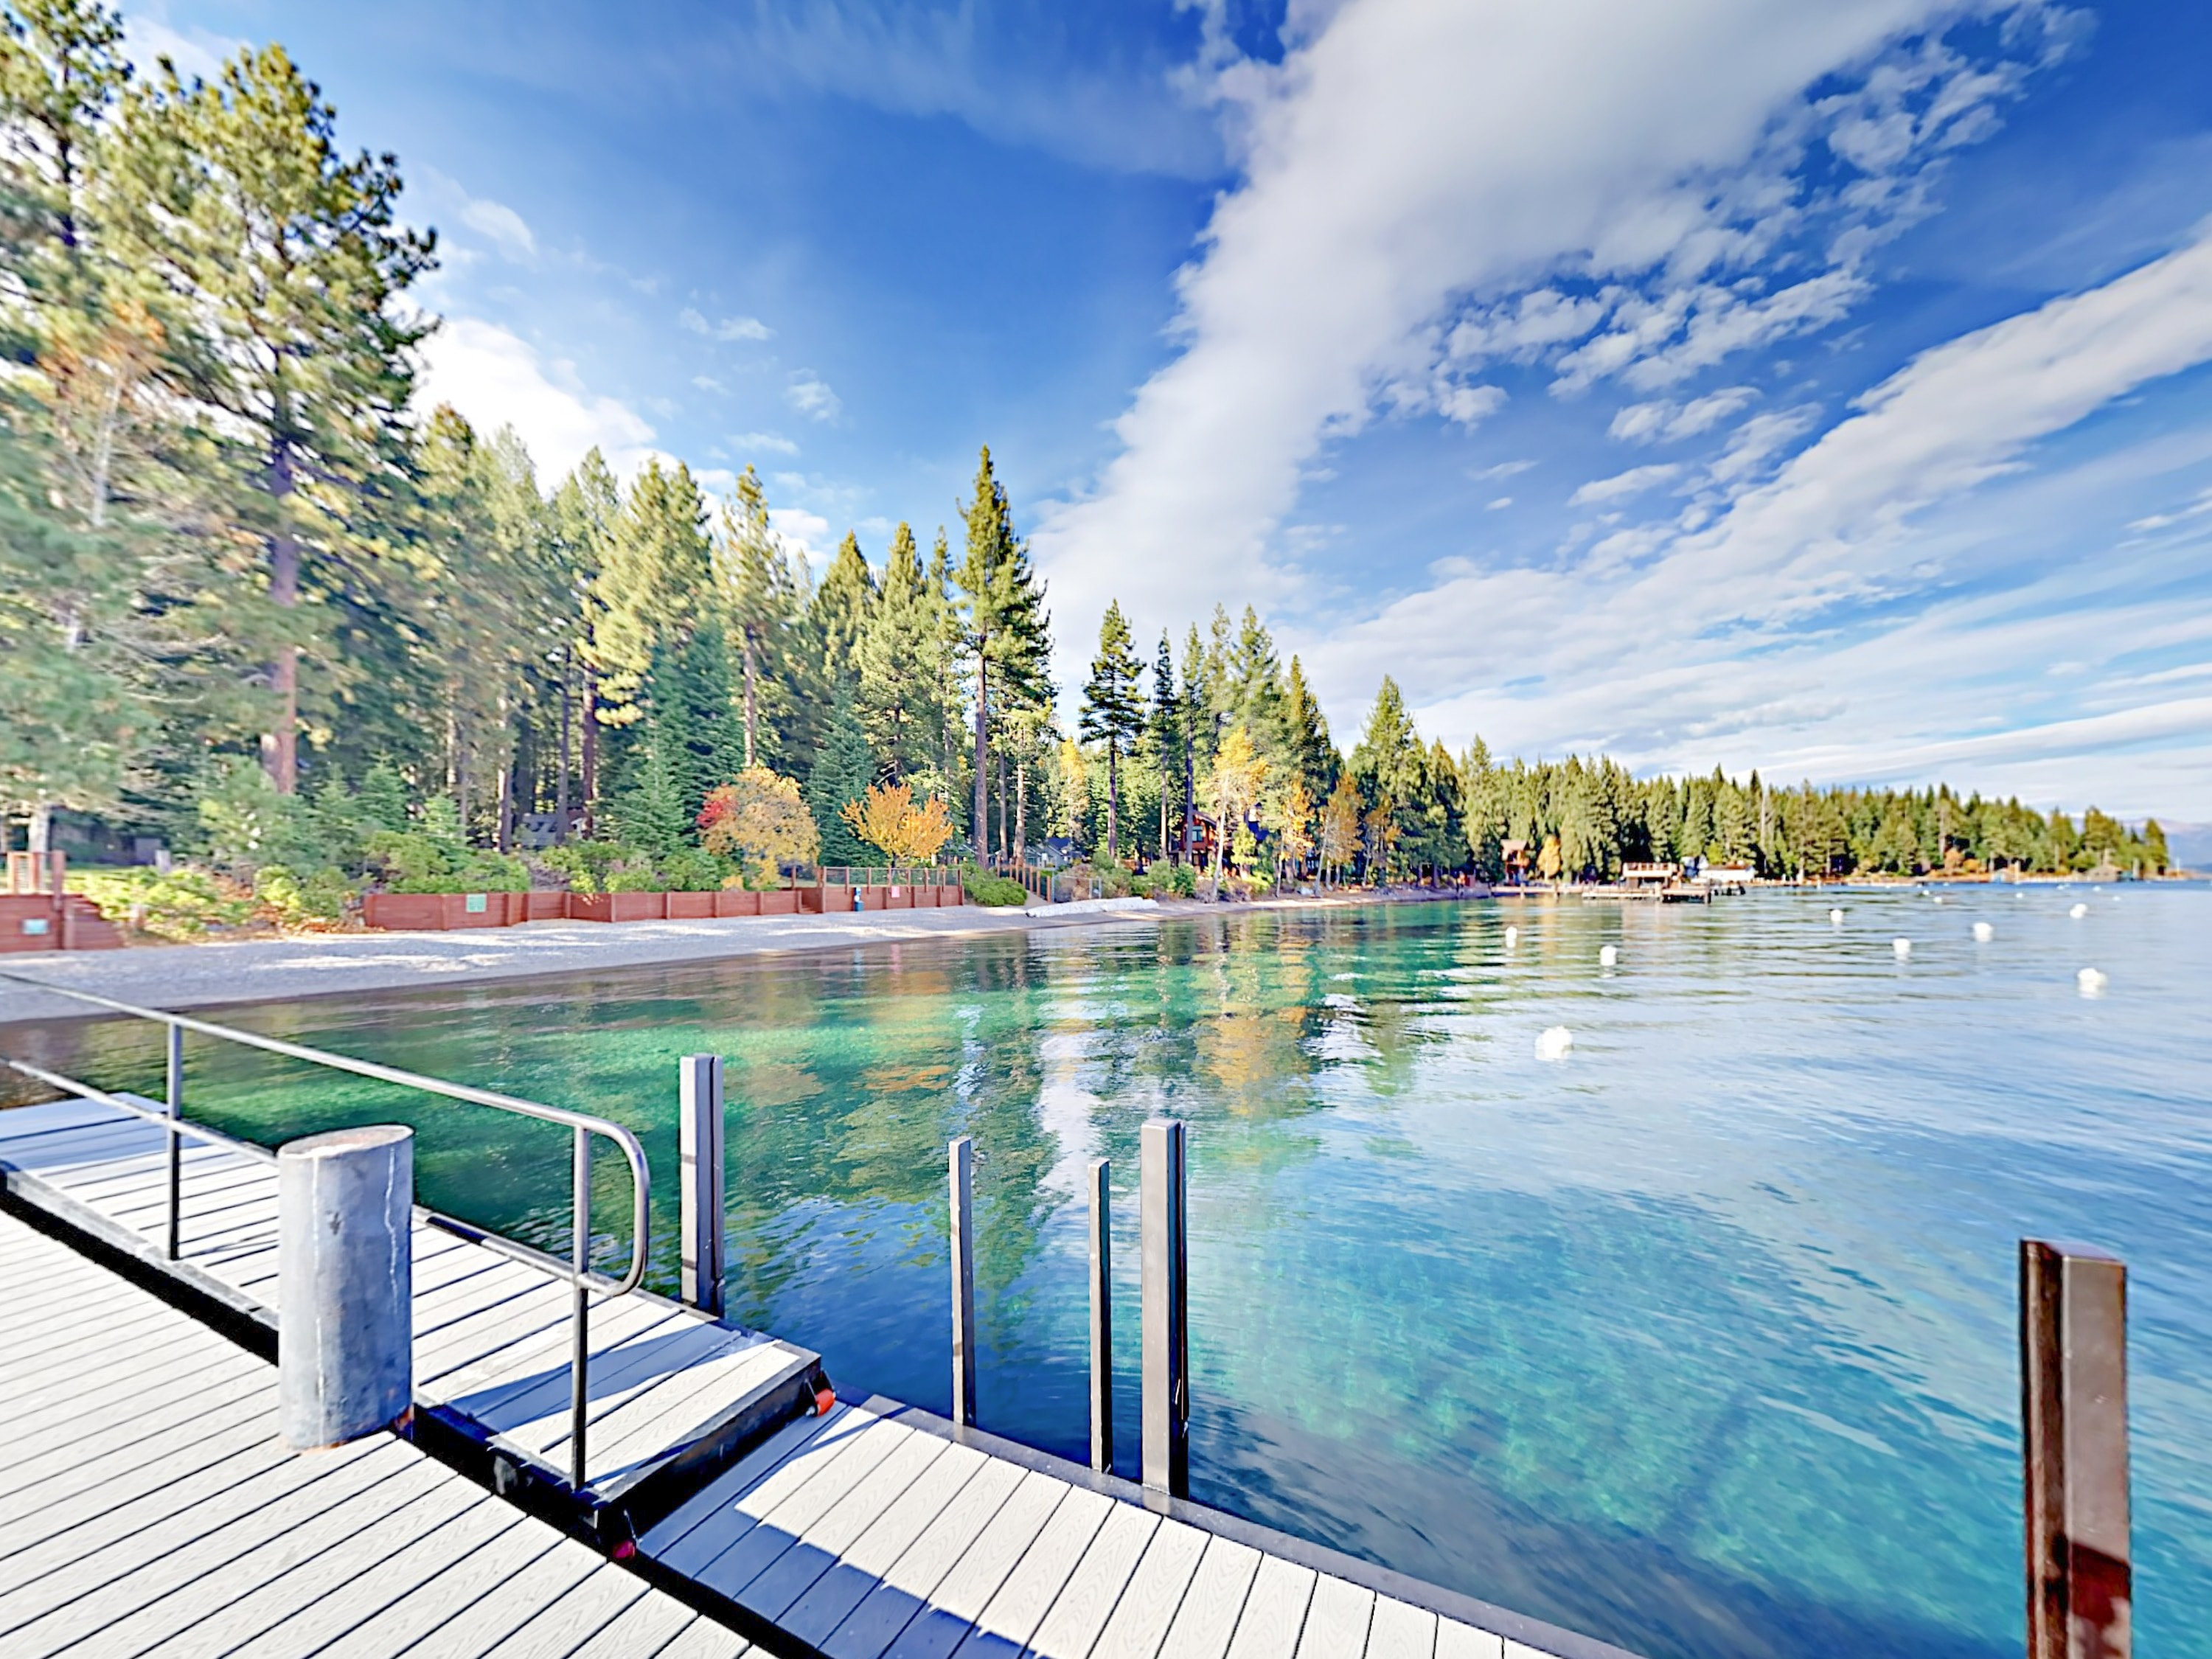 Take a refreshing dip in gorgeous Lake Tahoe from the dock at the Tahoe Beach Park Association.